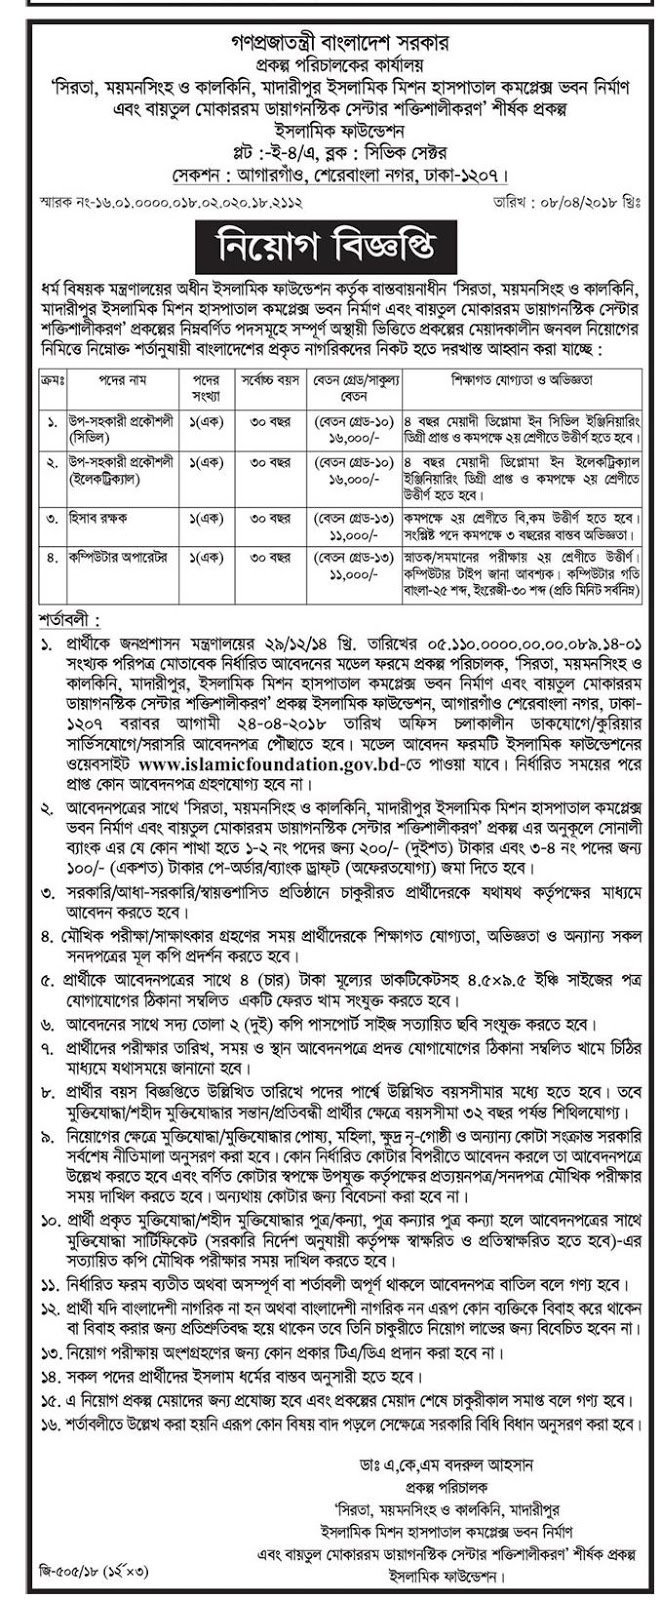 Bangladesh Islamic Foundation Job Circular 2018